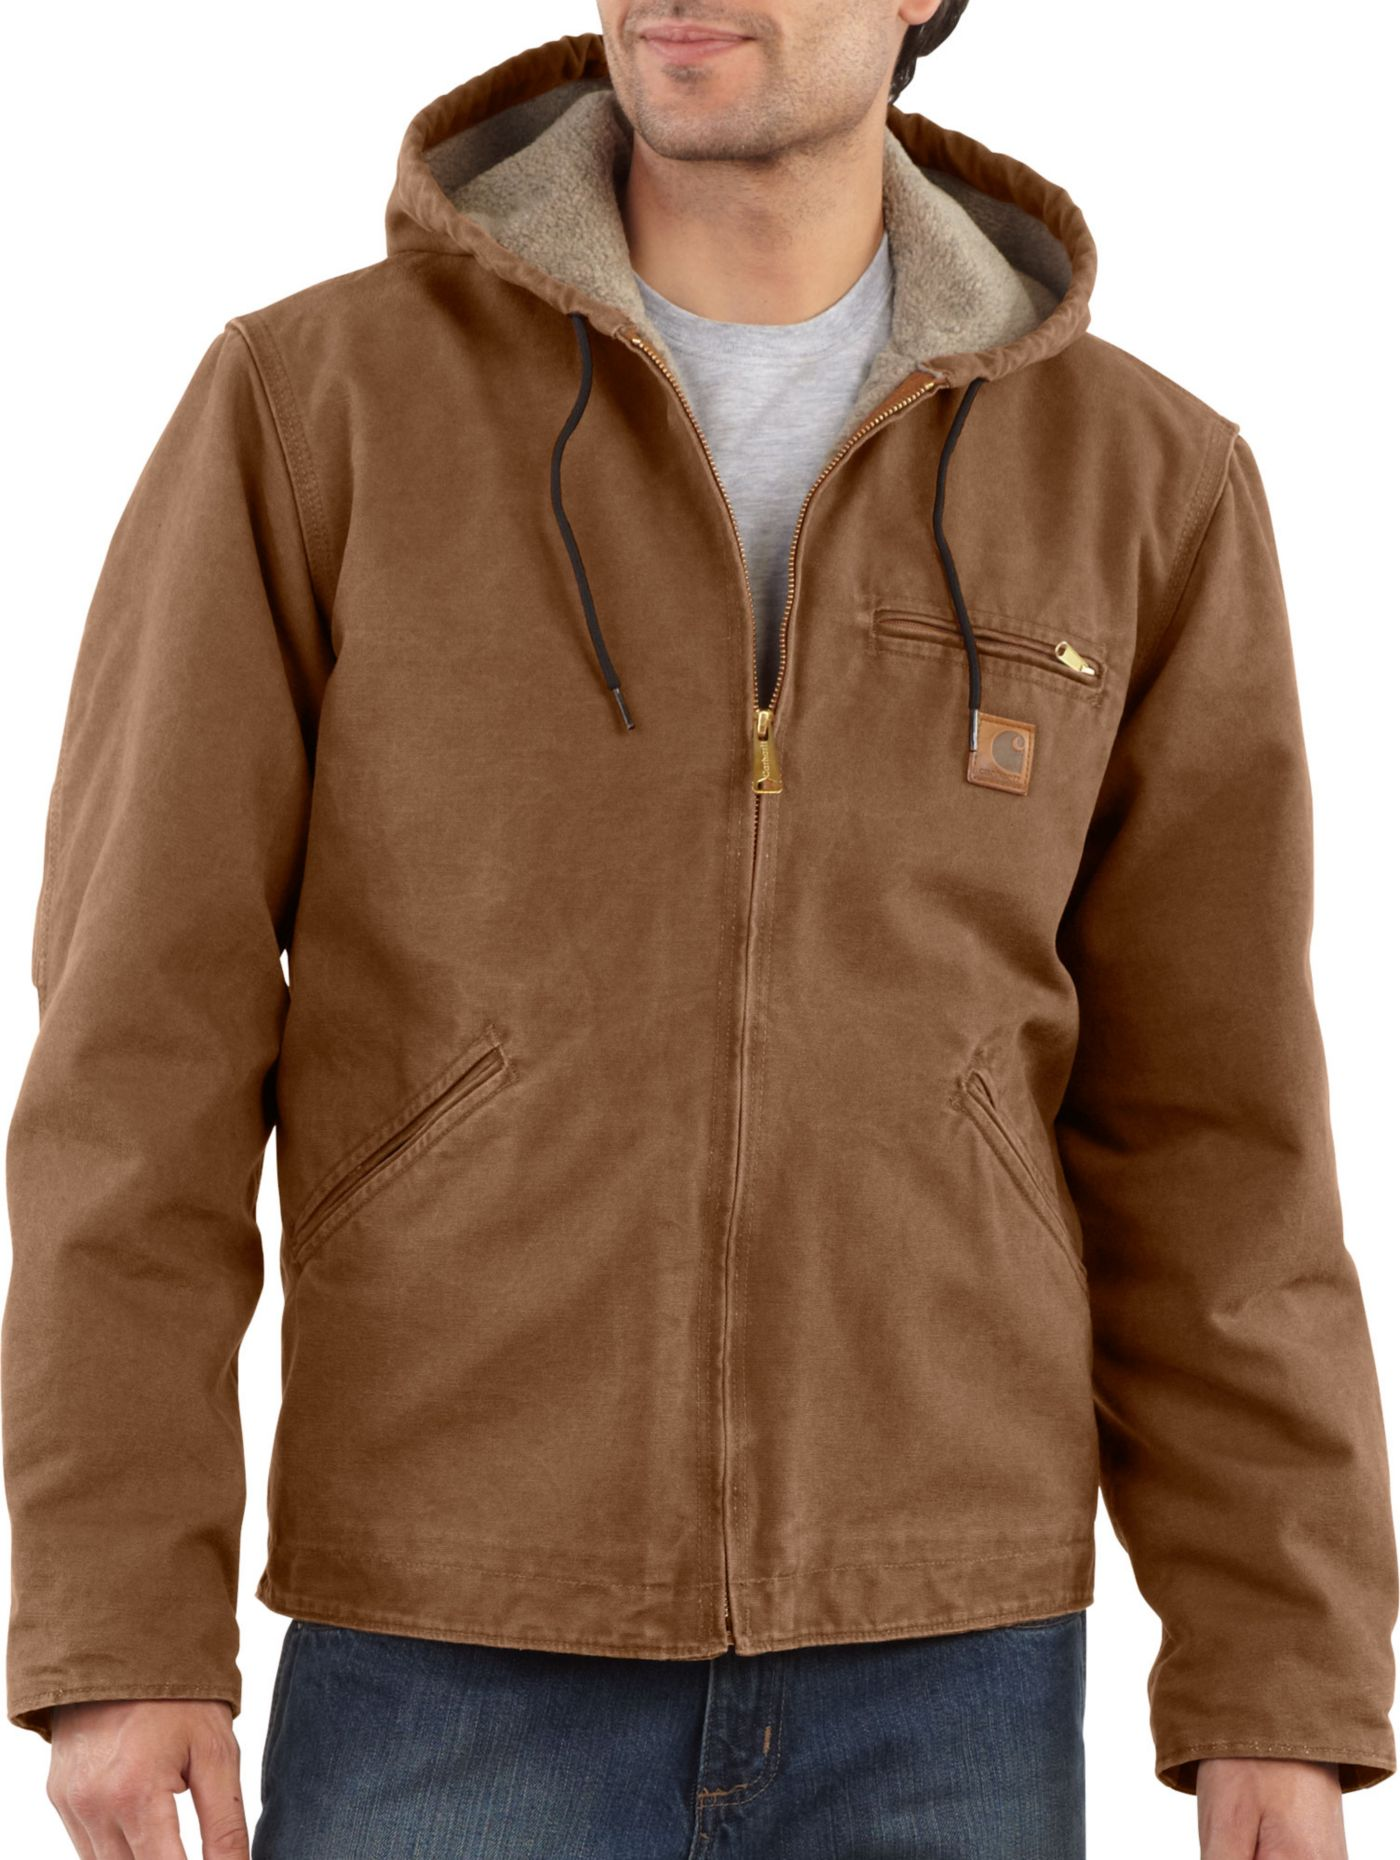 Carhartt Men's Sherpa Lined Sandstone Sierra Jacket (Regular and Big & Tall)